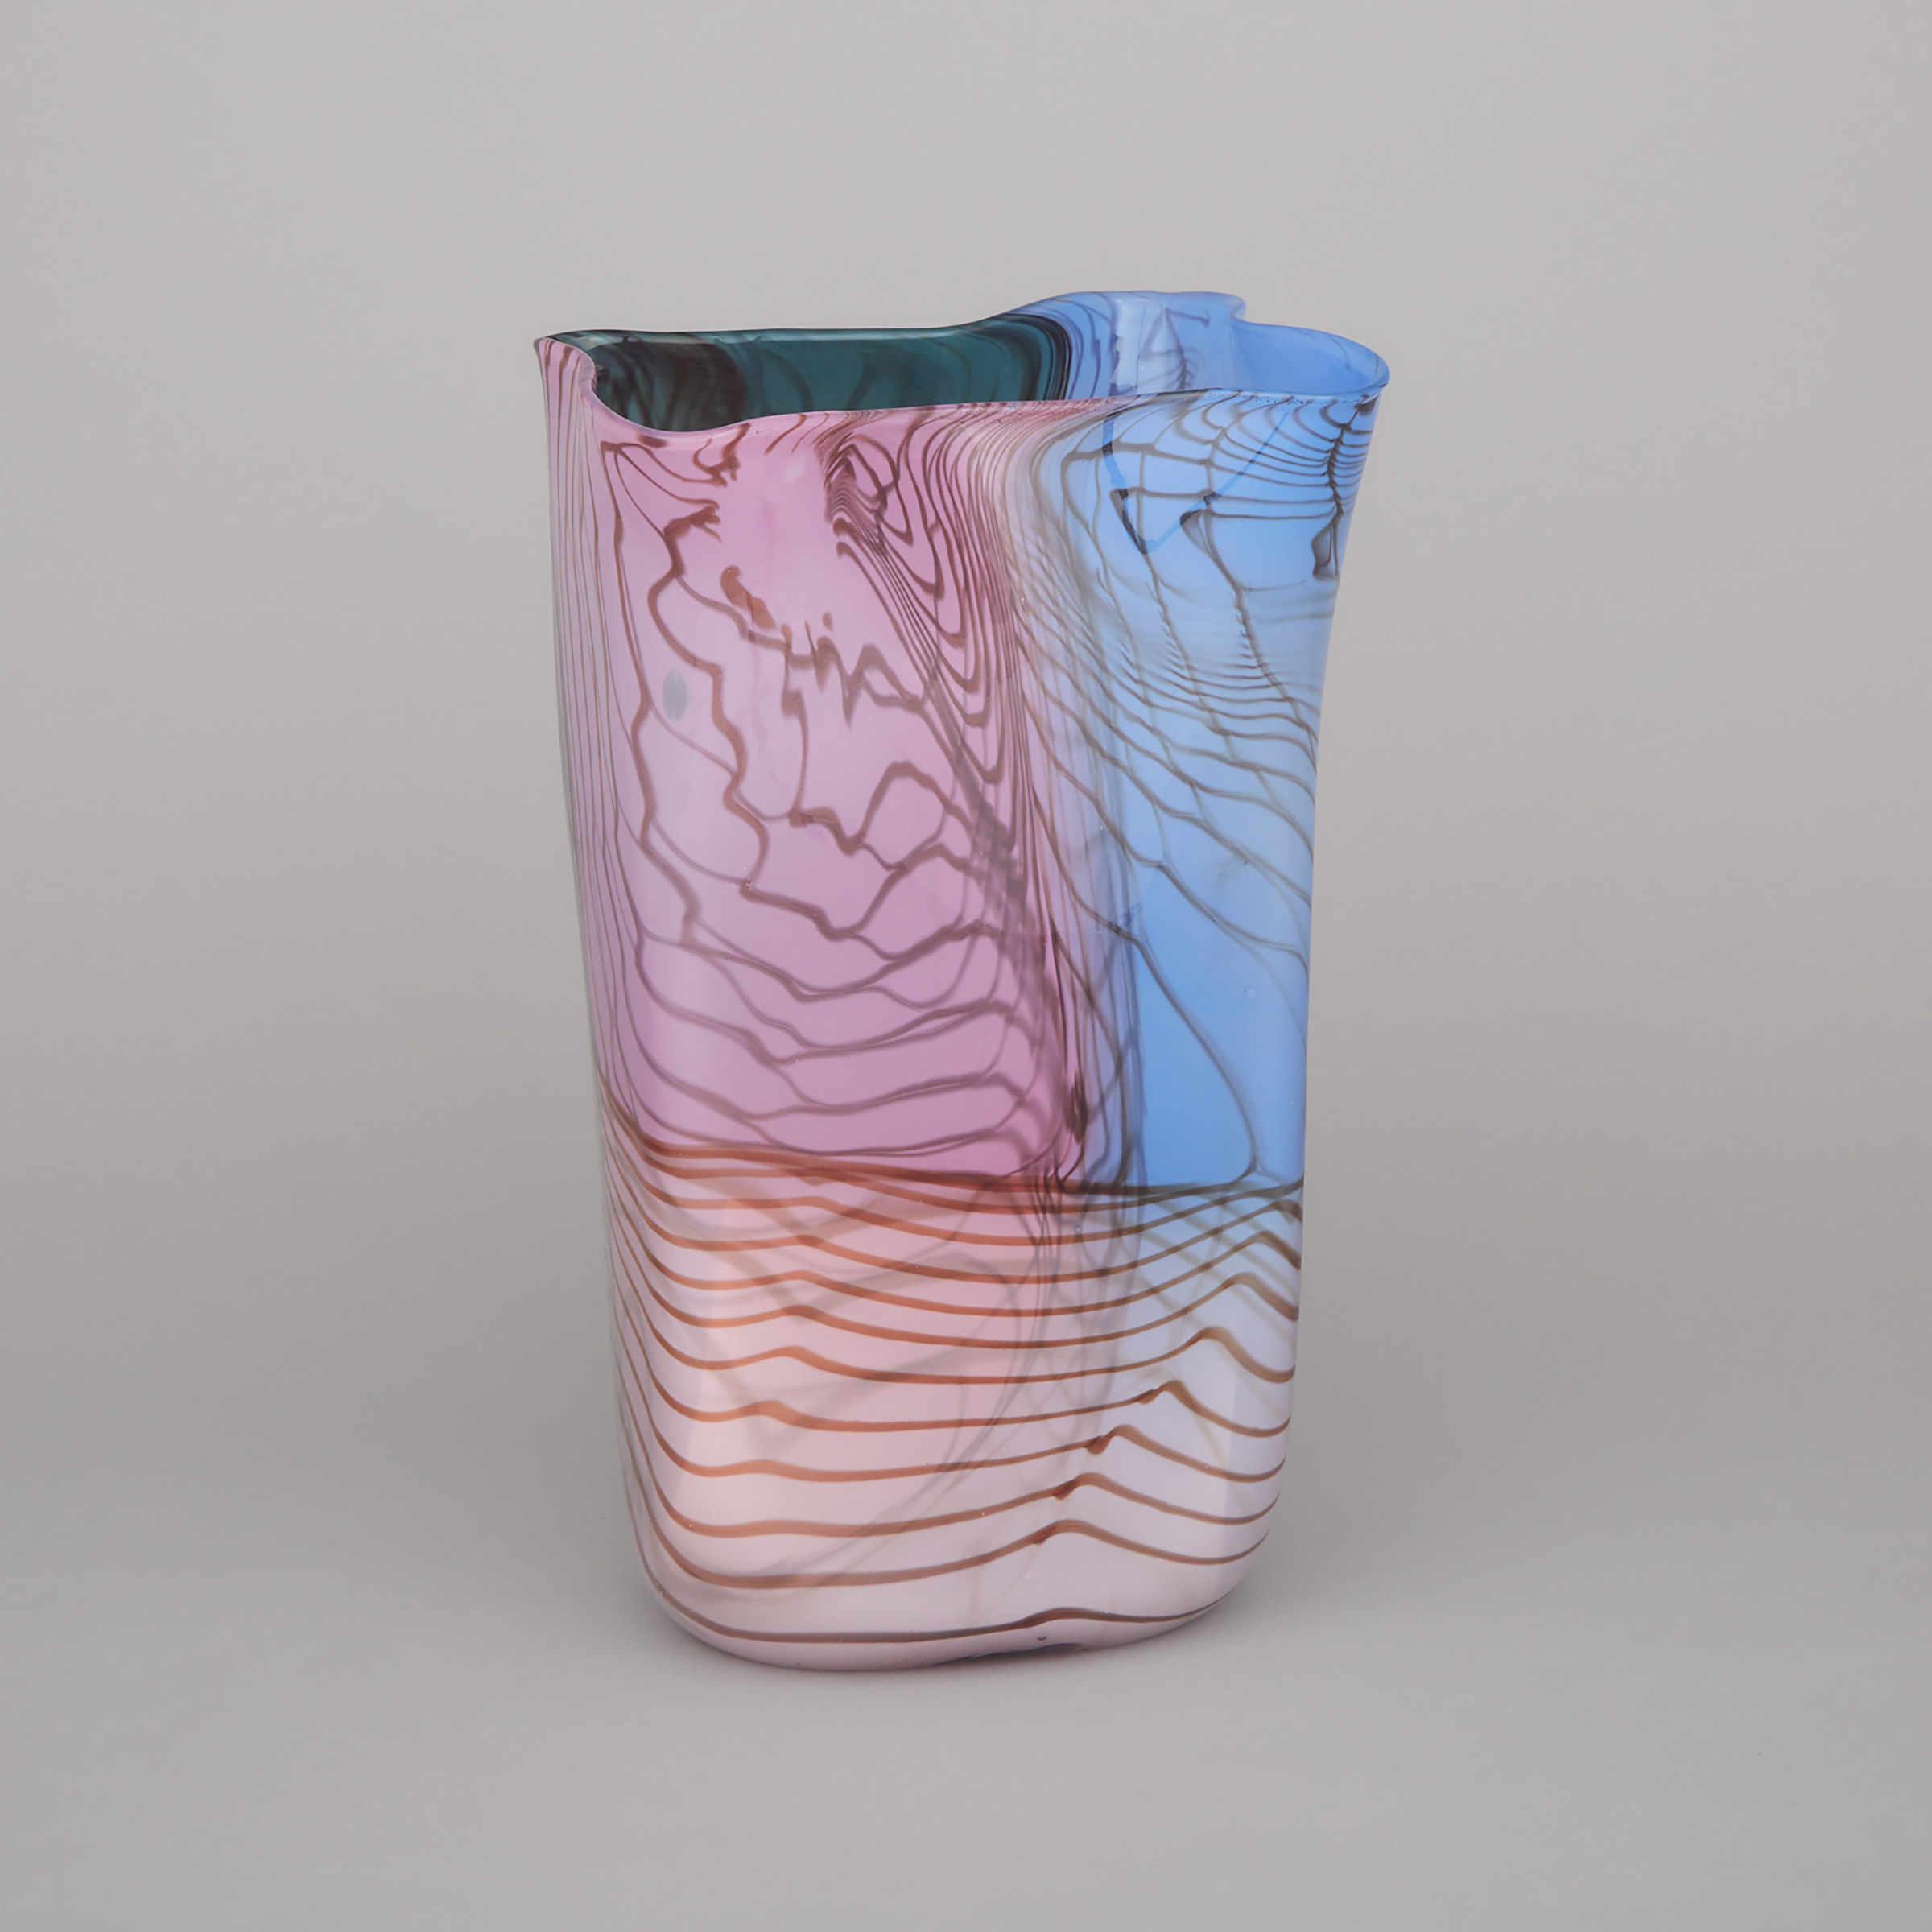 Thomas Philabaum (American, b.1947), Rectangular Glass 'Bag' Vase, 1982